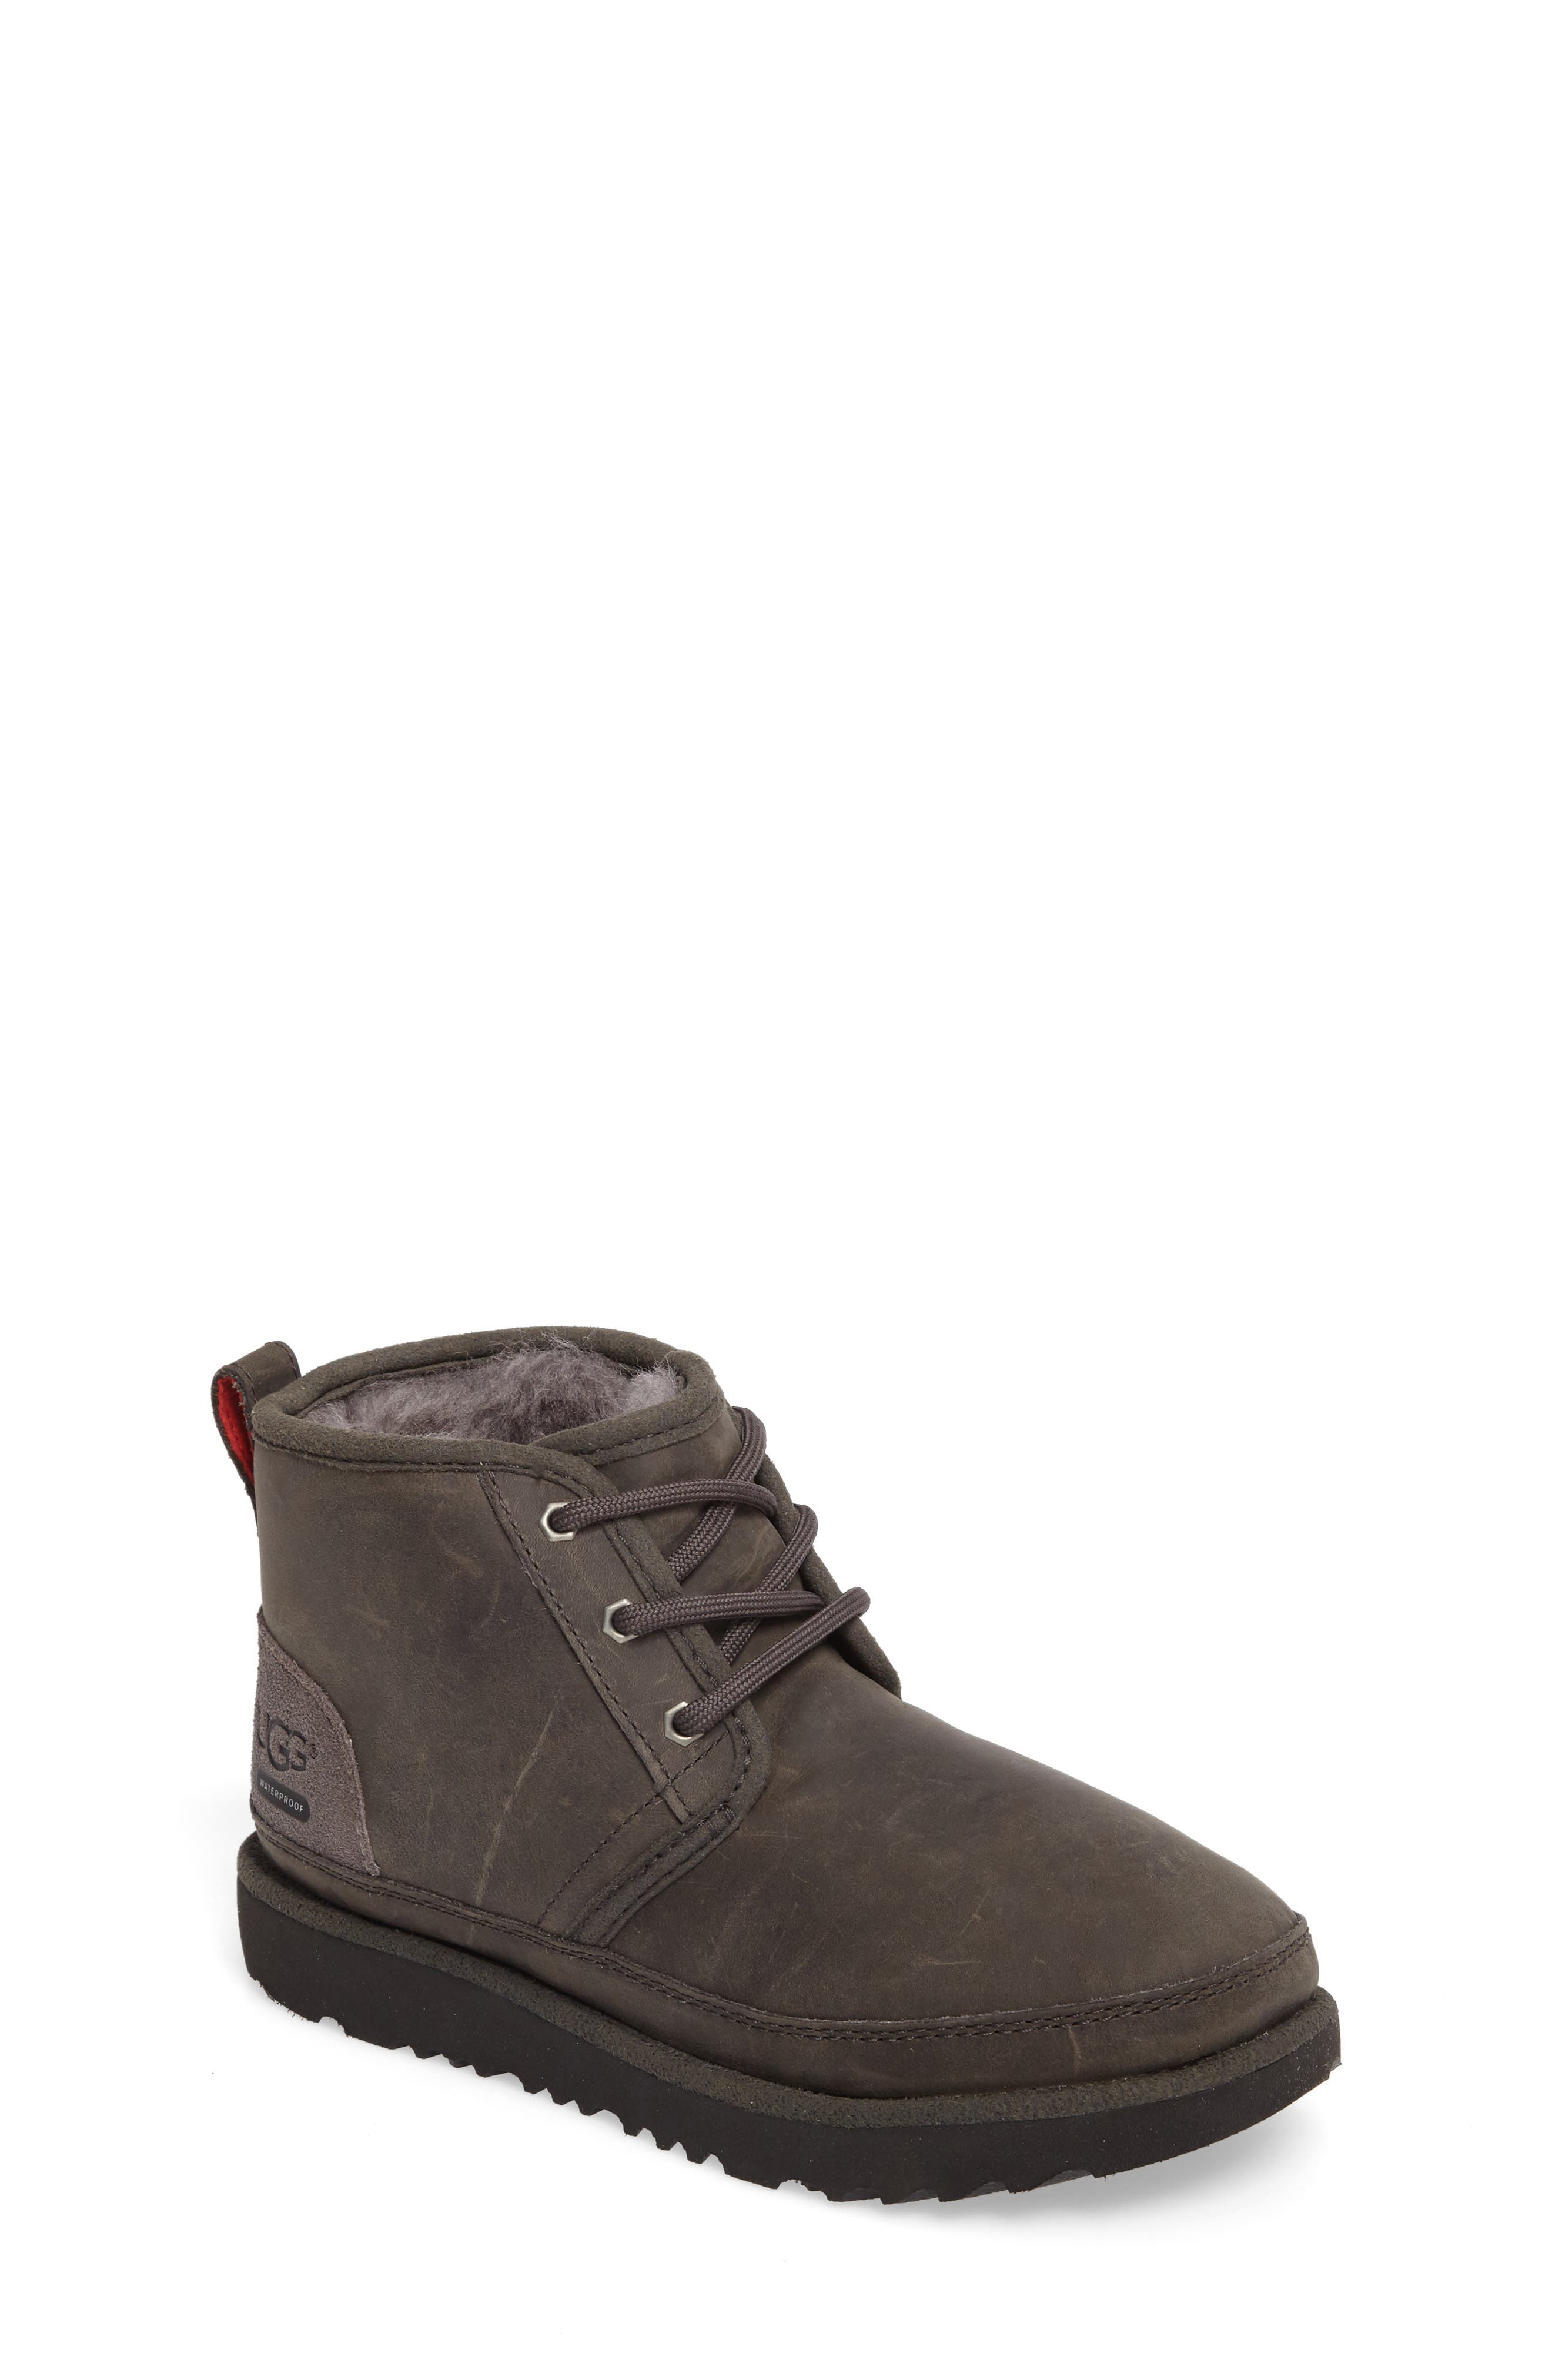 Neumel II Waterproof Chukka,                             Main thumbnail 1, color,                             CHARCOAL